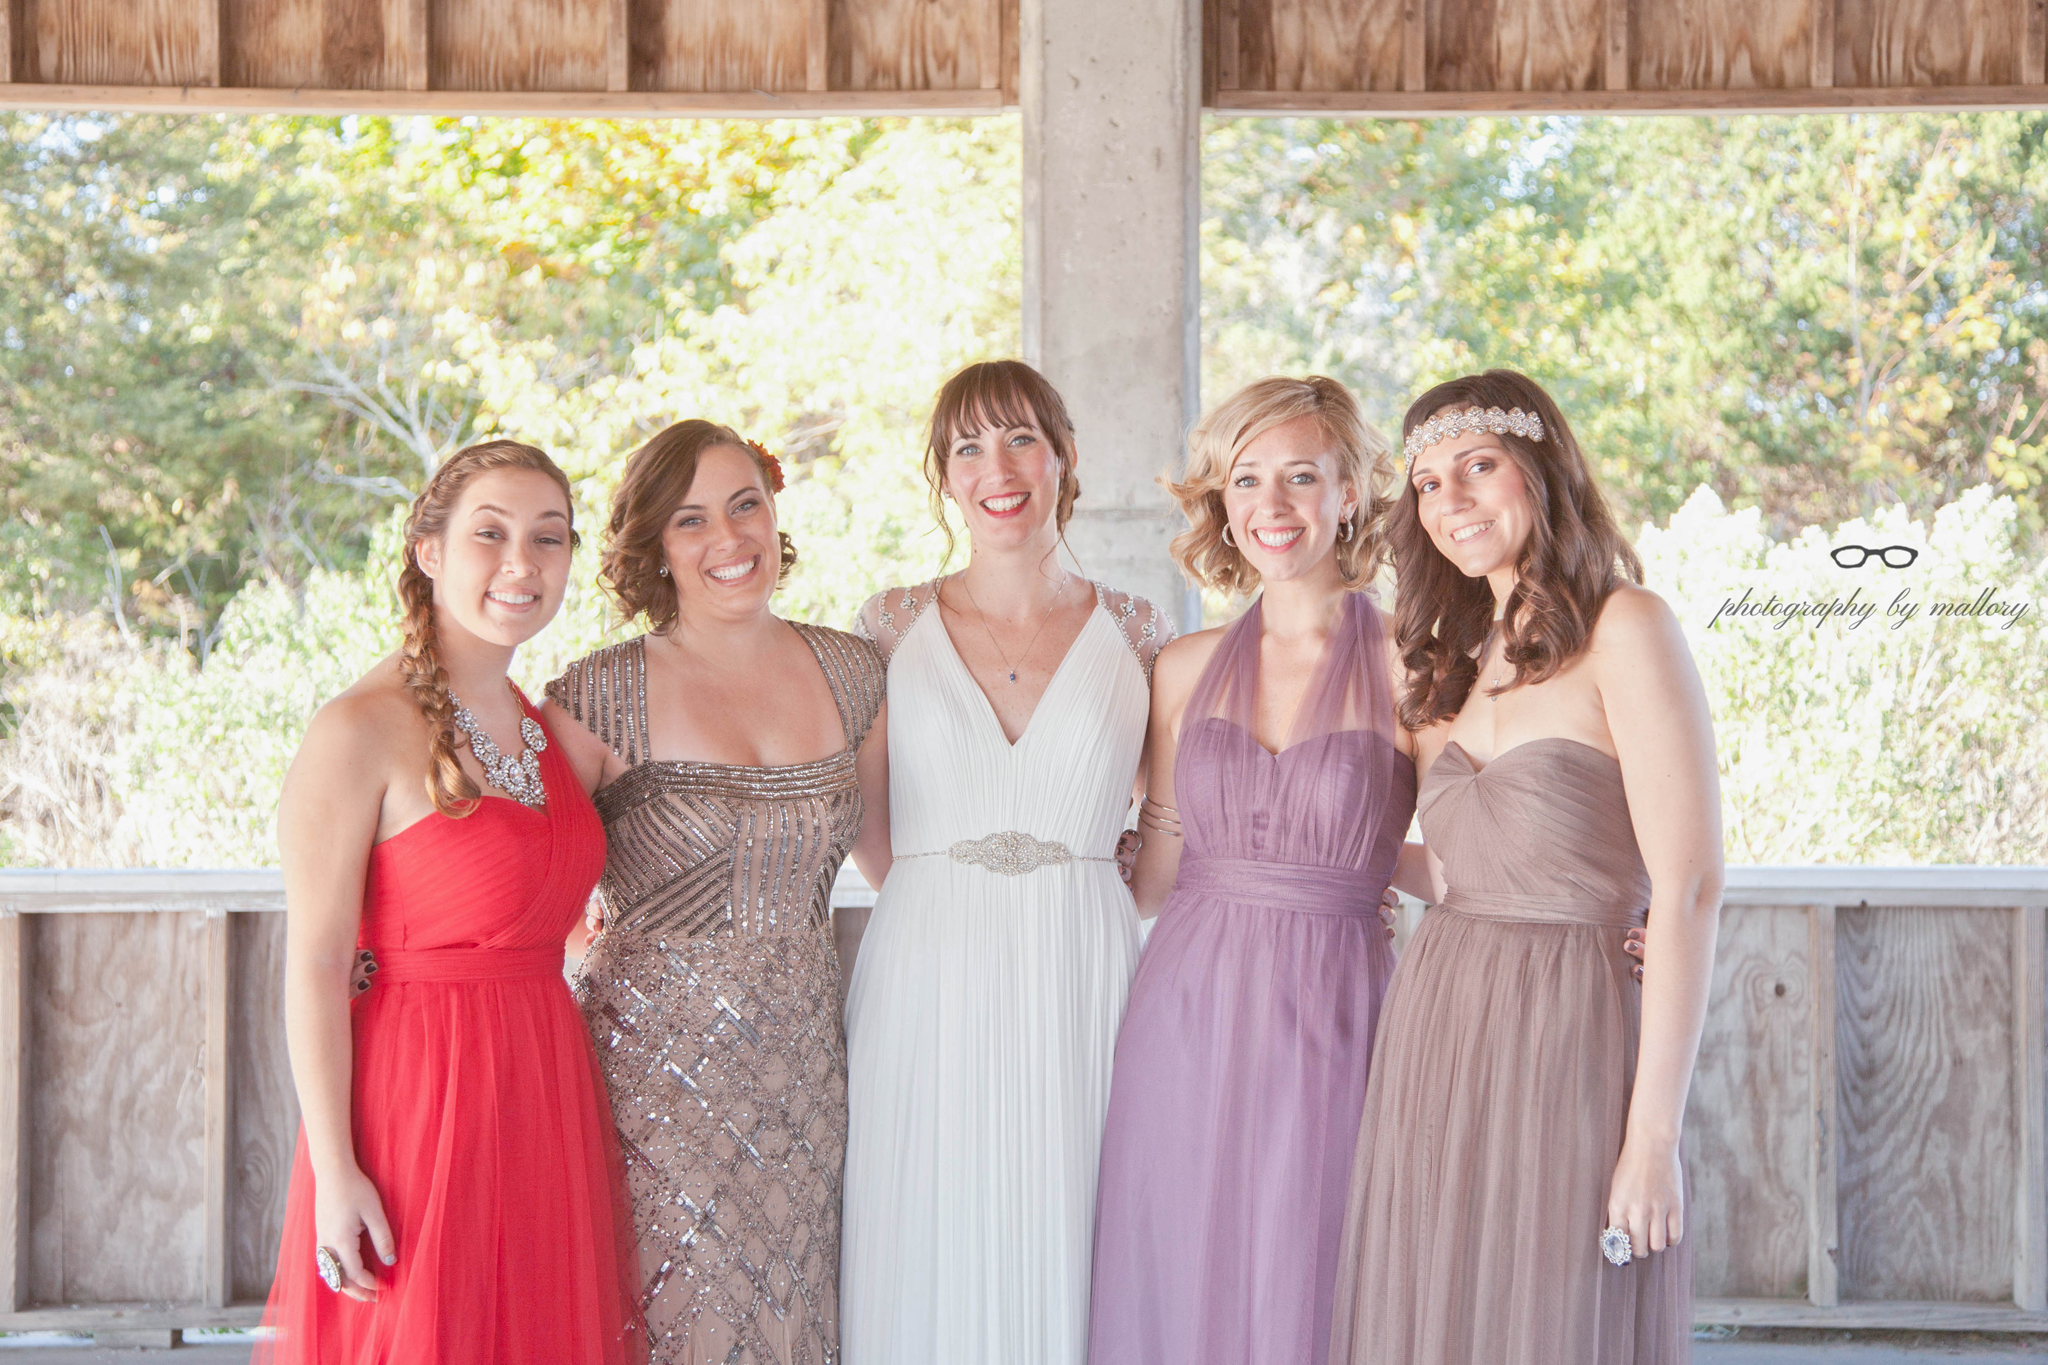 Fun fact: The three bridesmaid dresses (MOH is in sparkles) are all the same dress. The color and the tying of the sashes made them appear different. These are BHDLN dresses.